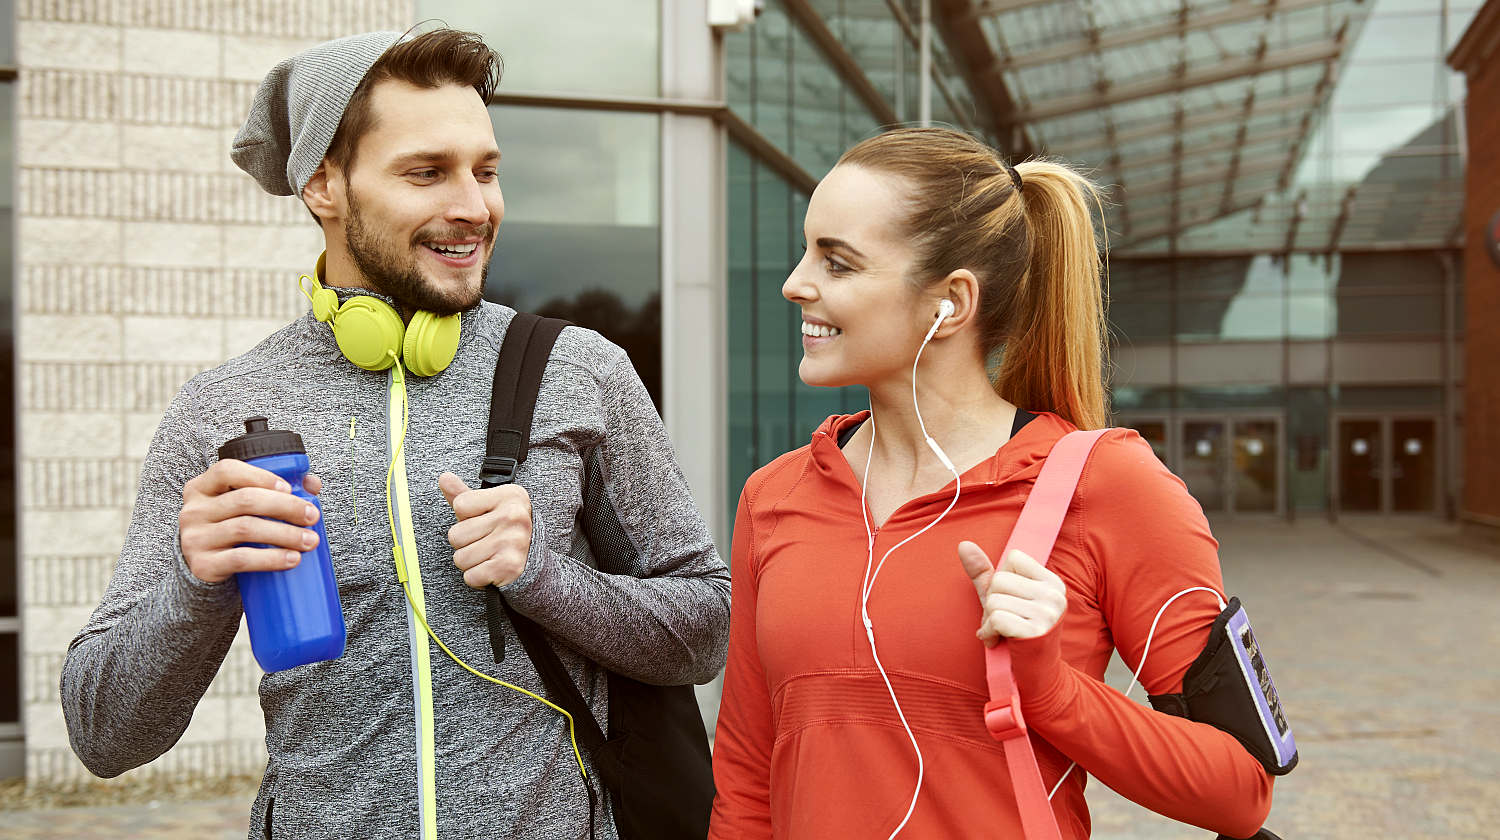 Feature | Fitness lifestyle young couple | Hacks to Stay Hydrated